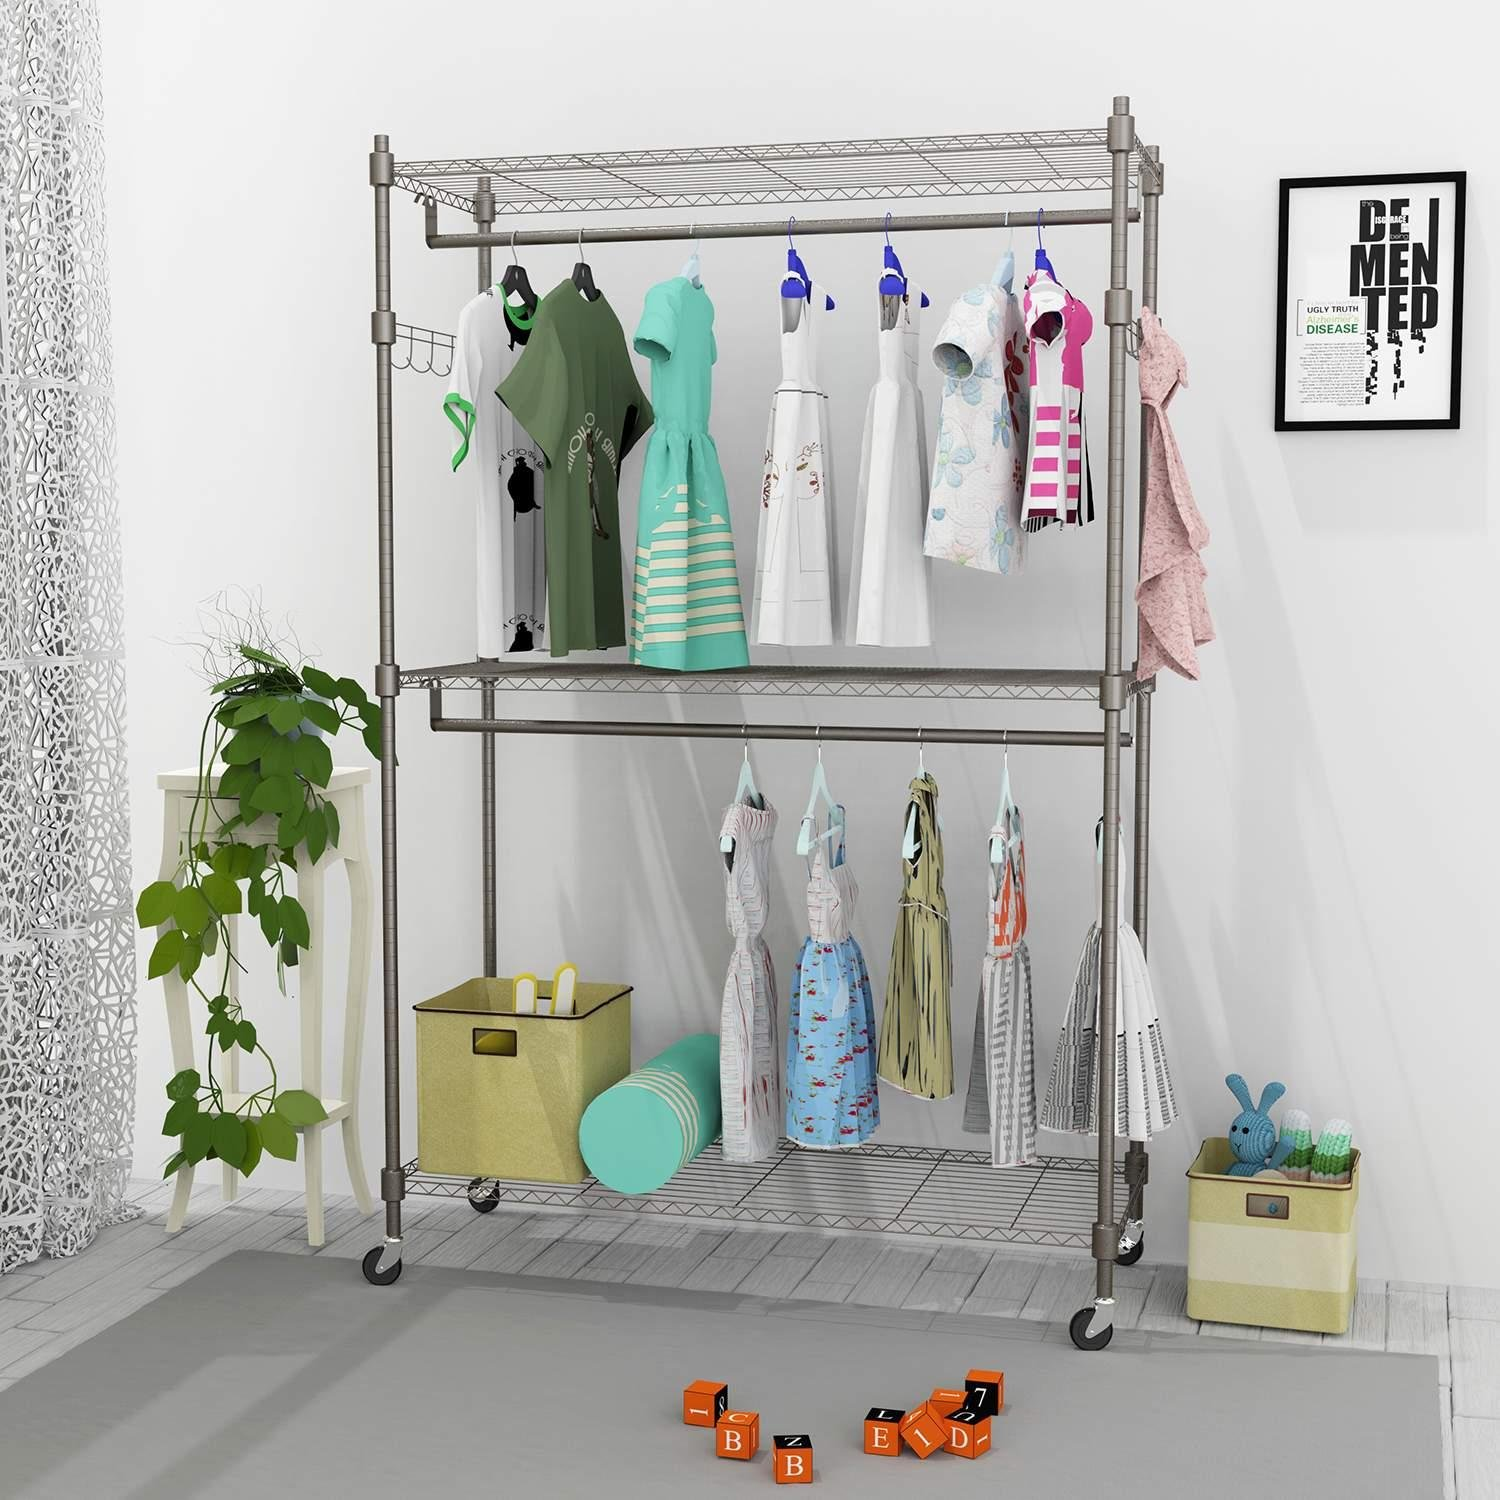 Fashine 3-Tier Heavy Duty Wire Shelving Clothing Rolling Rack, Portable Garment Rack for Closet Organizer with Rod Wheels Adjustable Shelves and Side Hooks (US Stock) (Gray 2 Hanging Rods 2 Hooks)